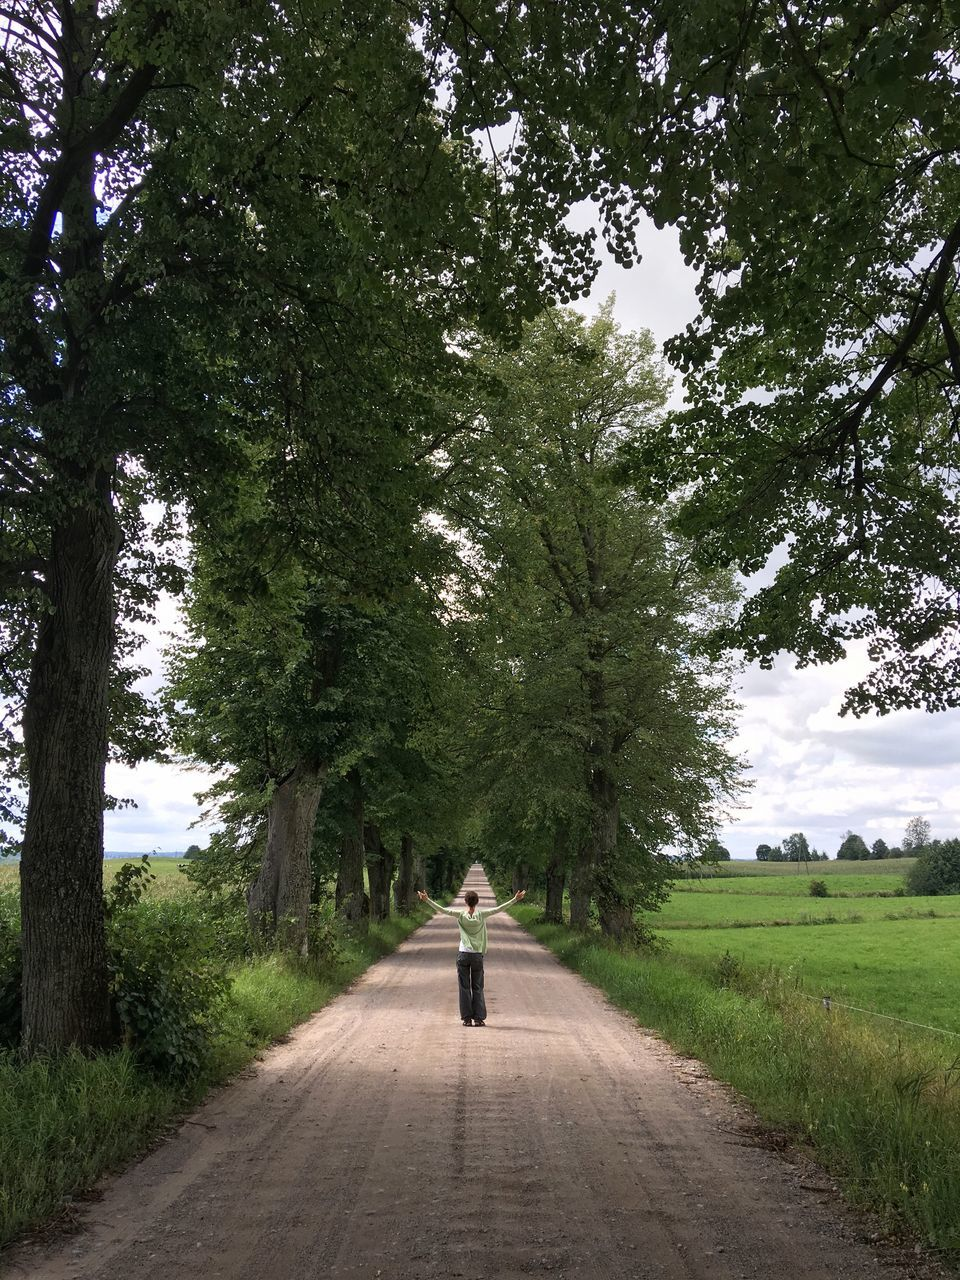 tree, full length, rear view, one person, road, walking, the way forward, real people, casual clothing, day, transportation, nature, leisure activity, outdoors, growth, beauty in nature, grass, sky, people